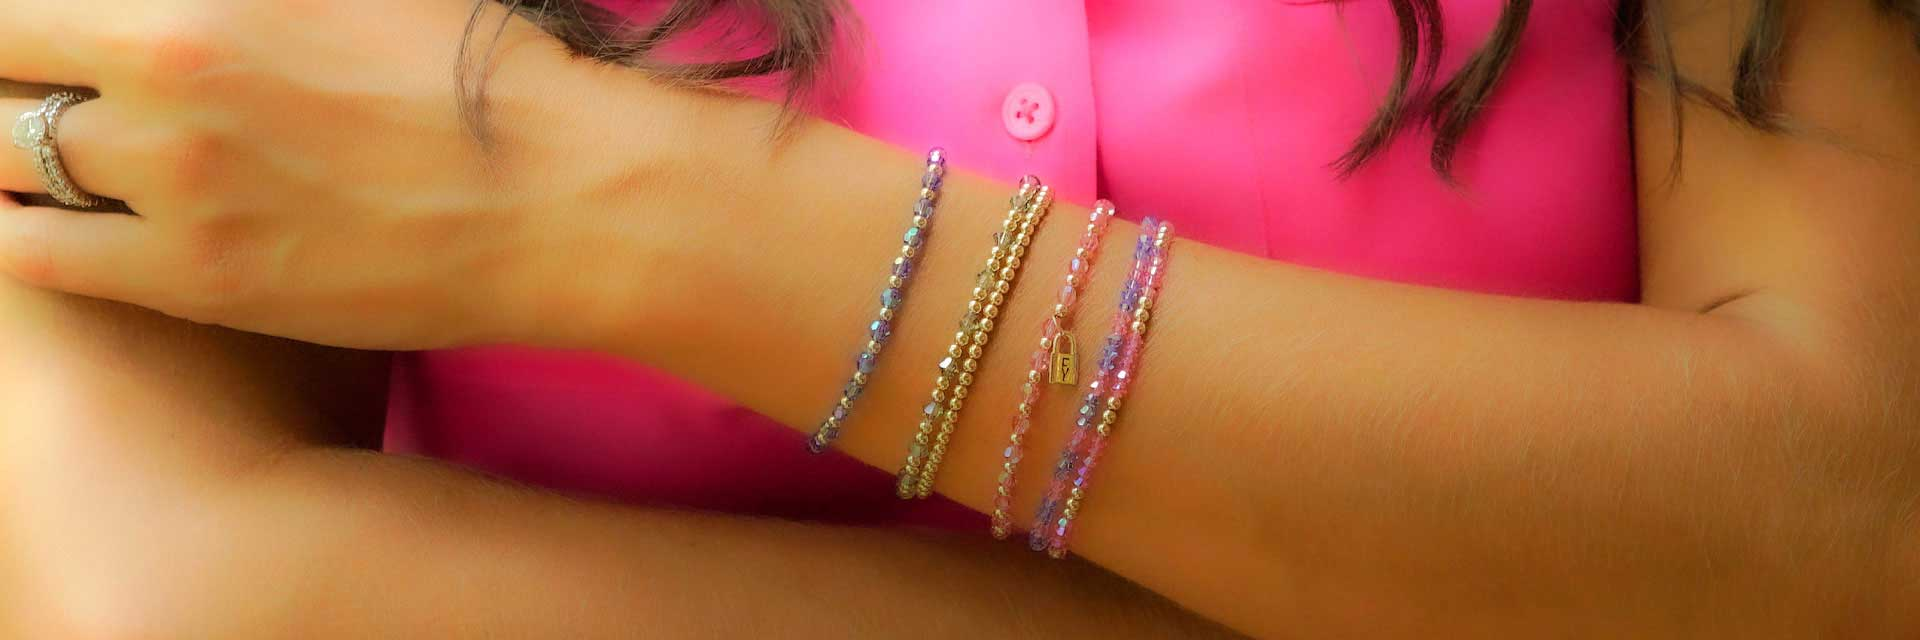 Bracelets for her and for him